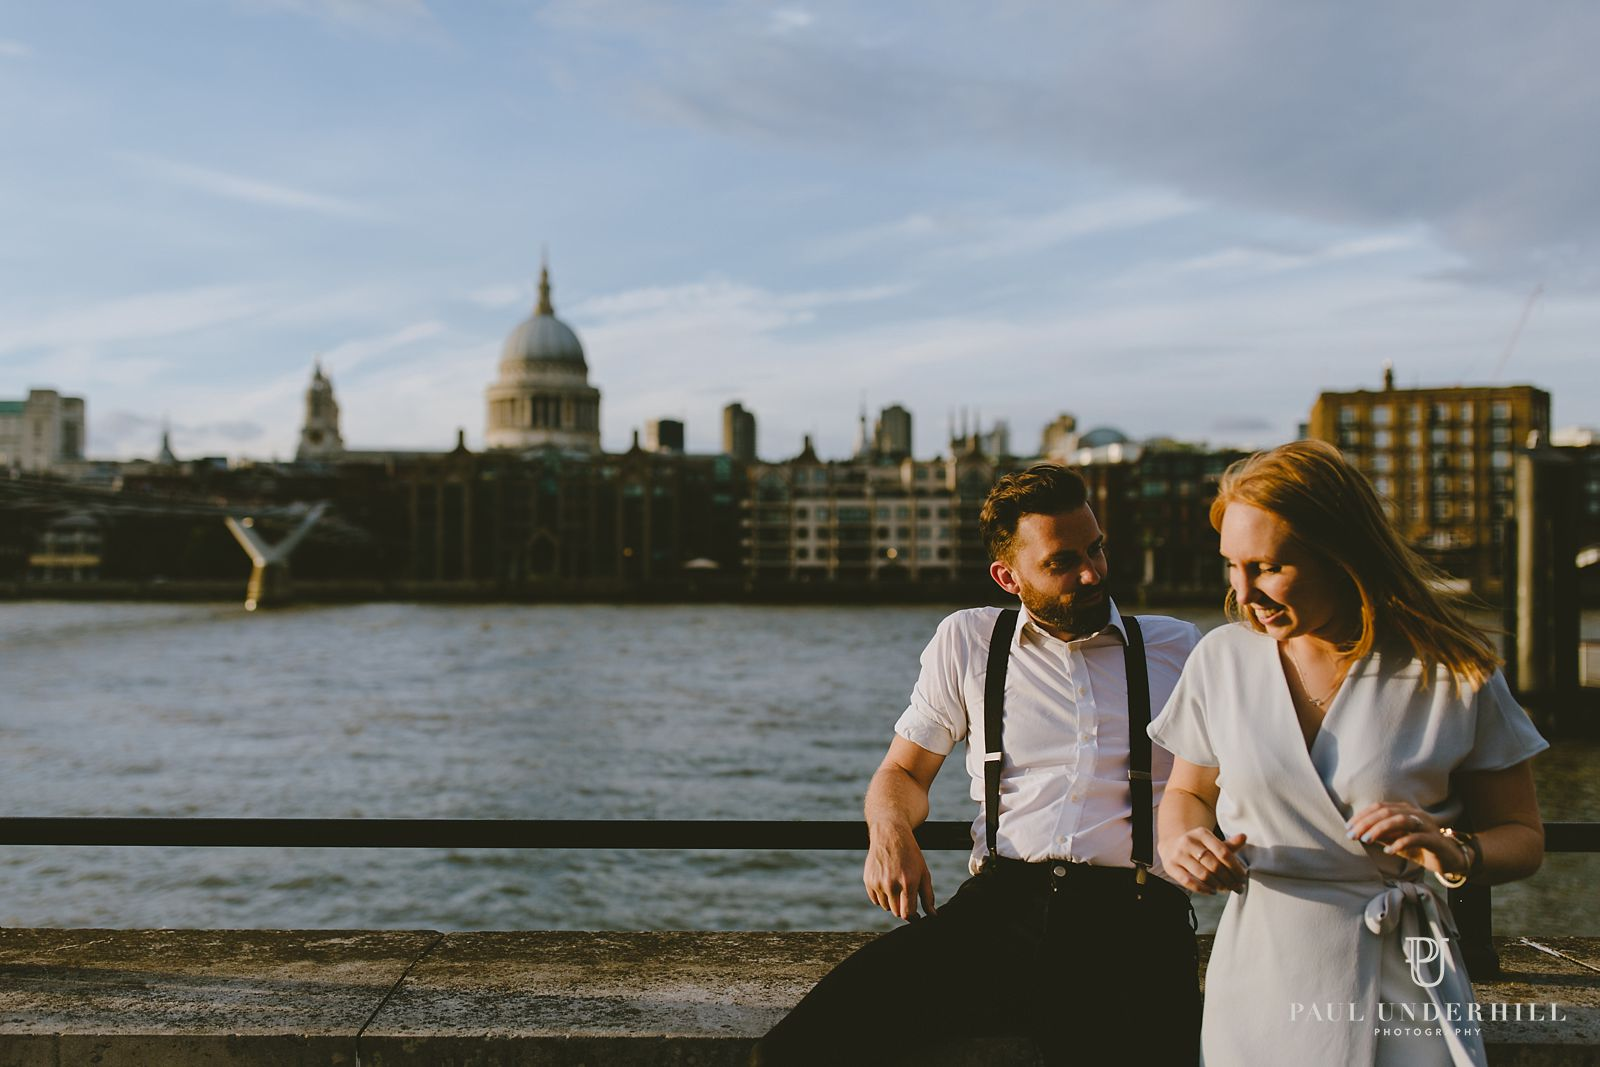 Artistic couples photography in London